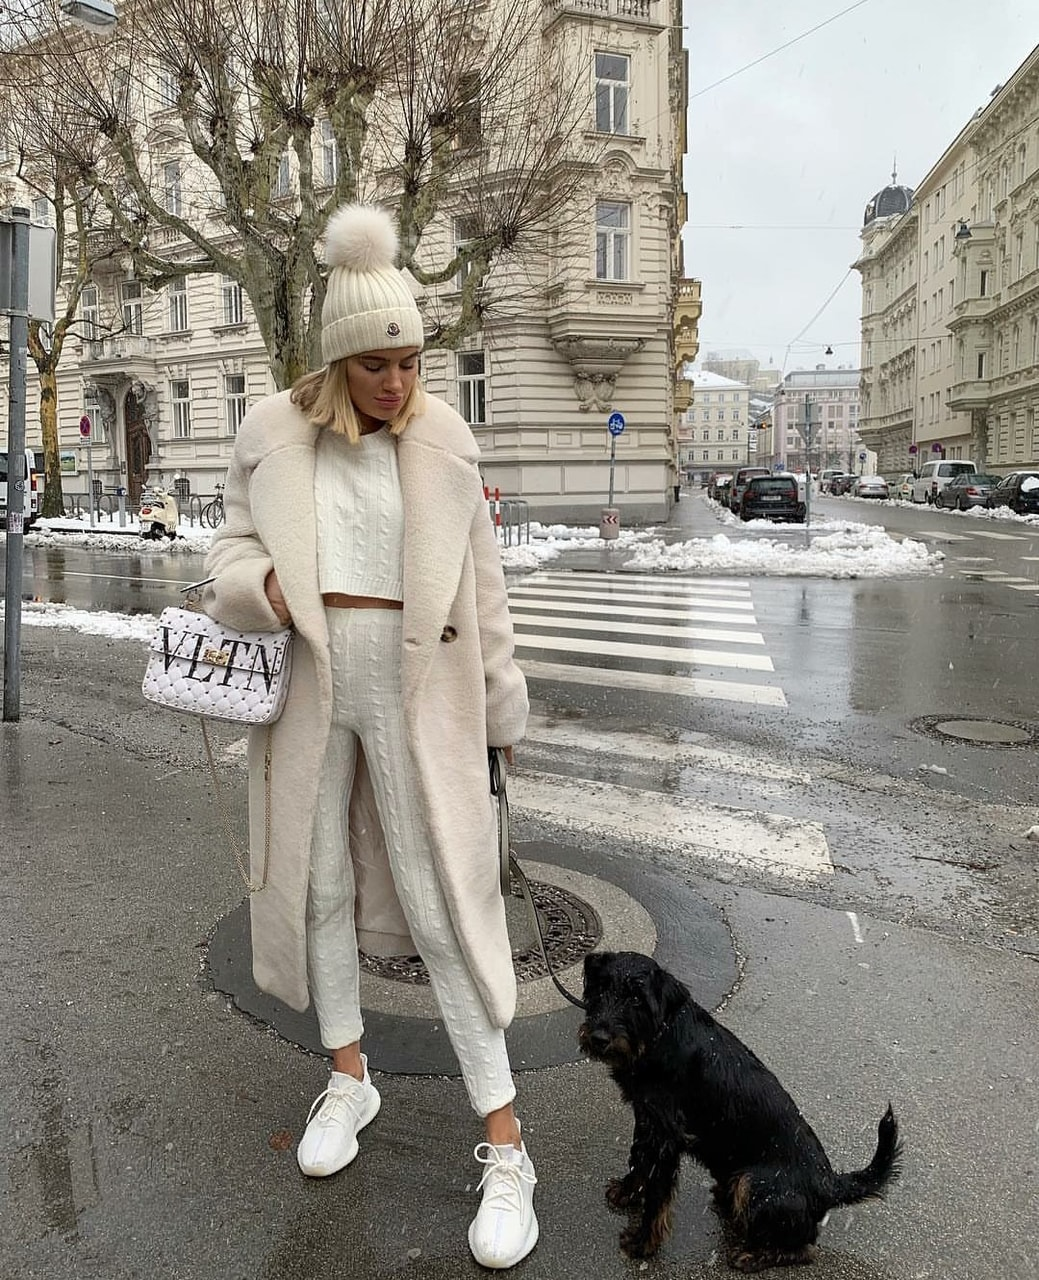 Image de fashion and street style